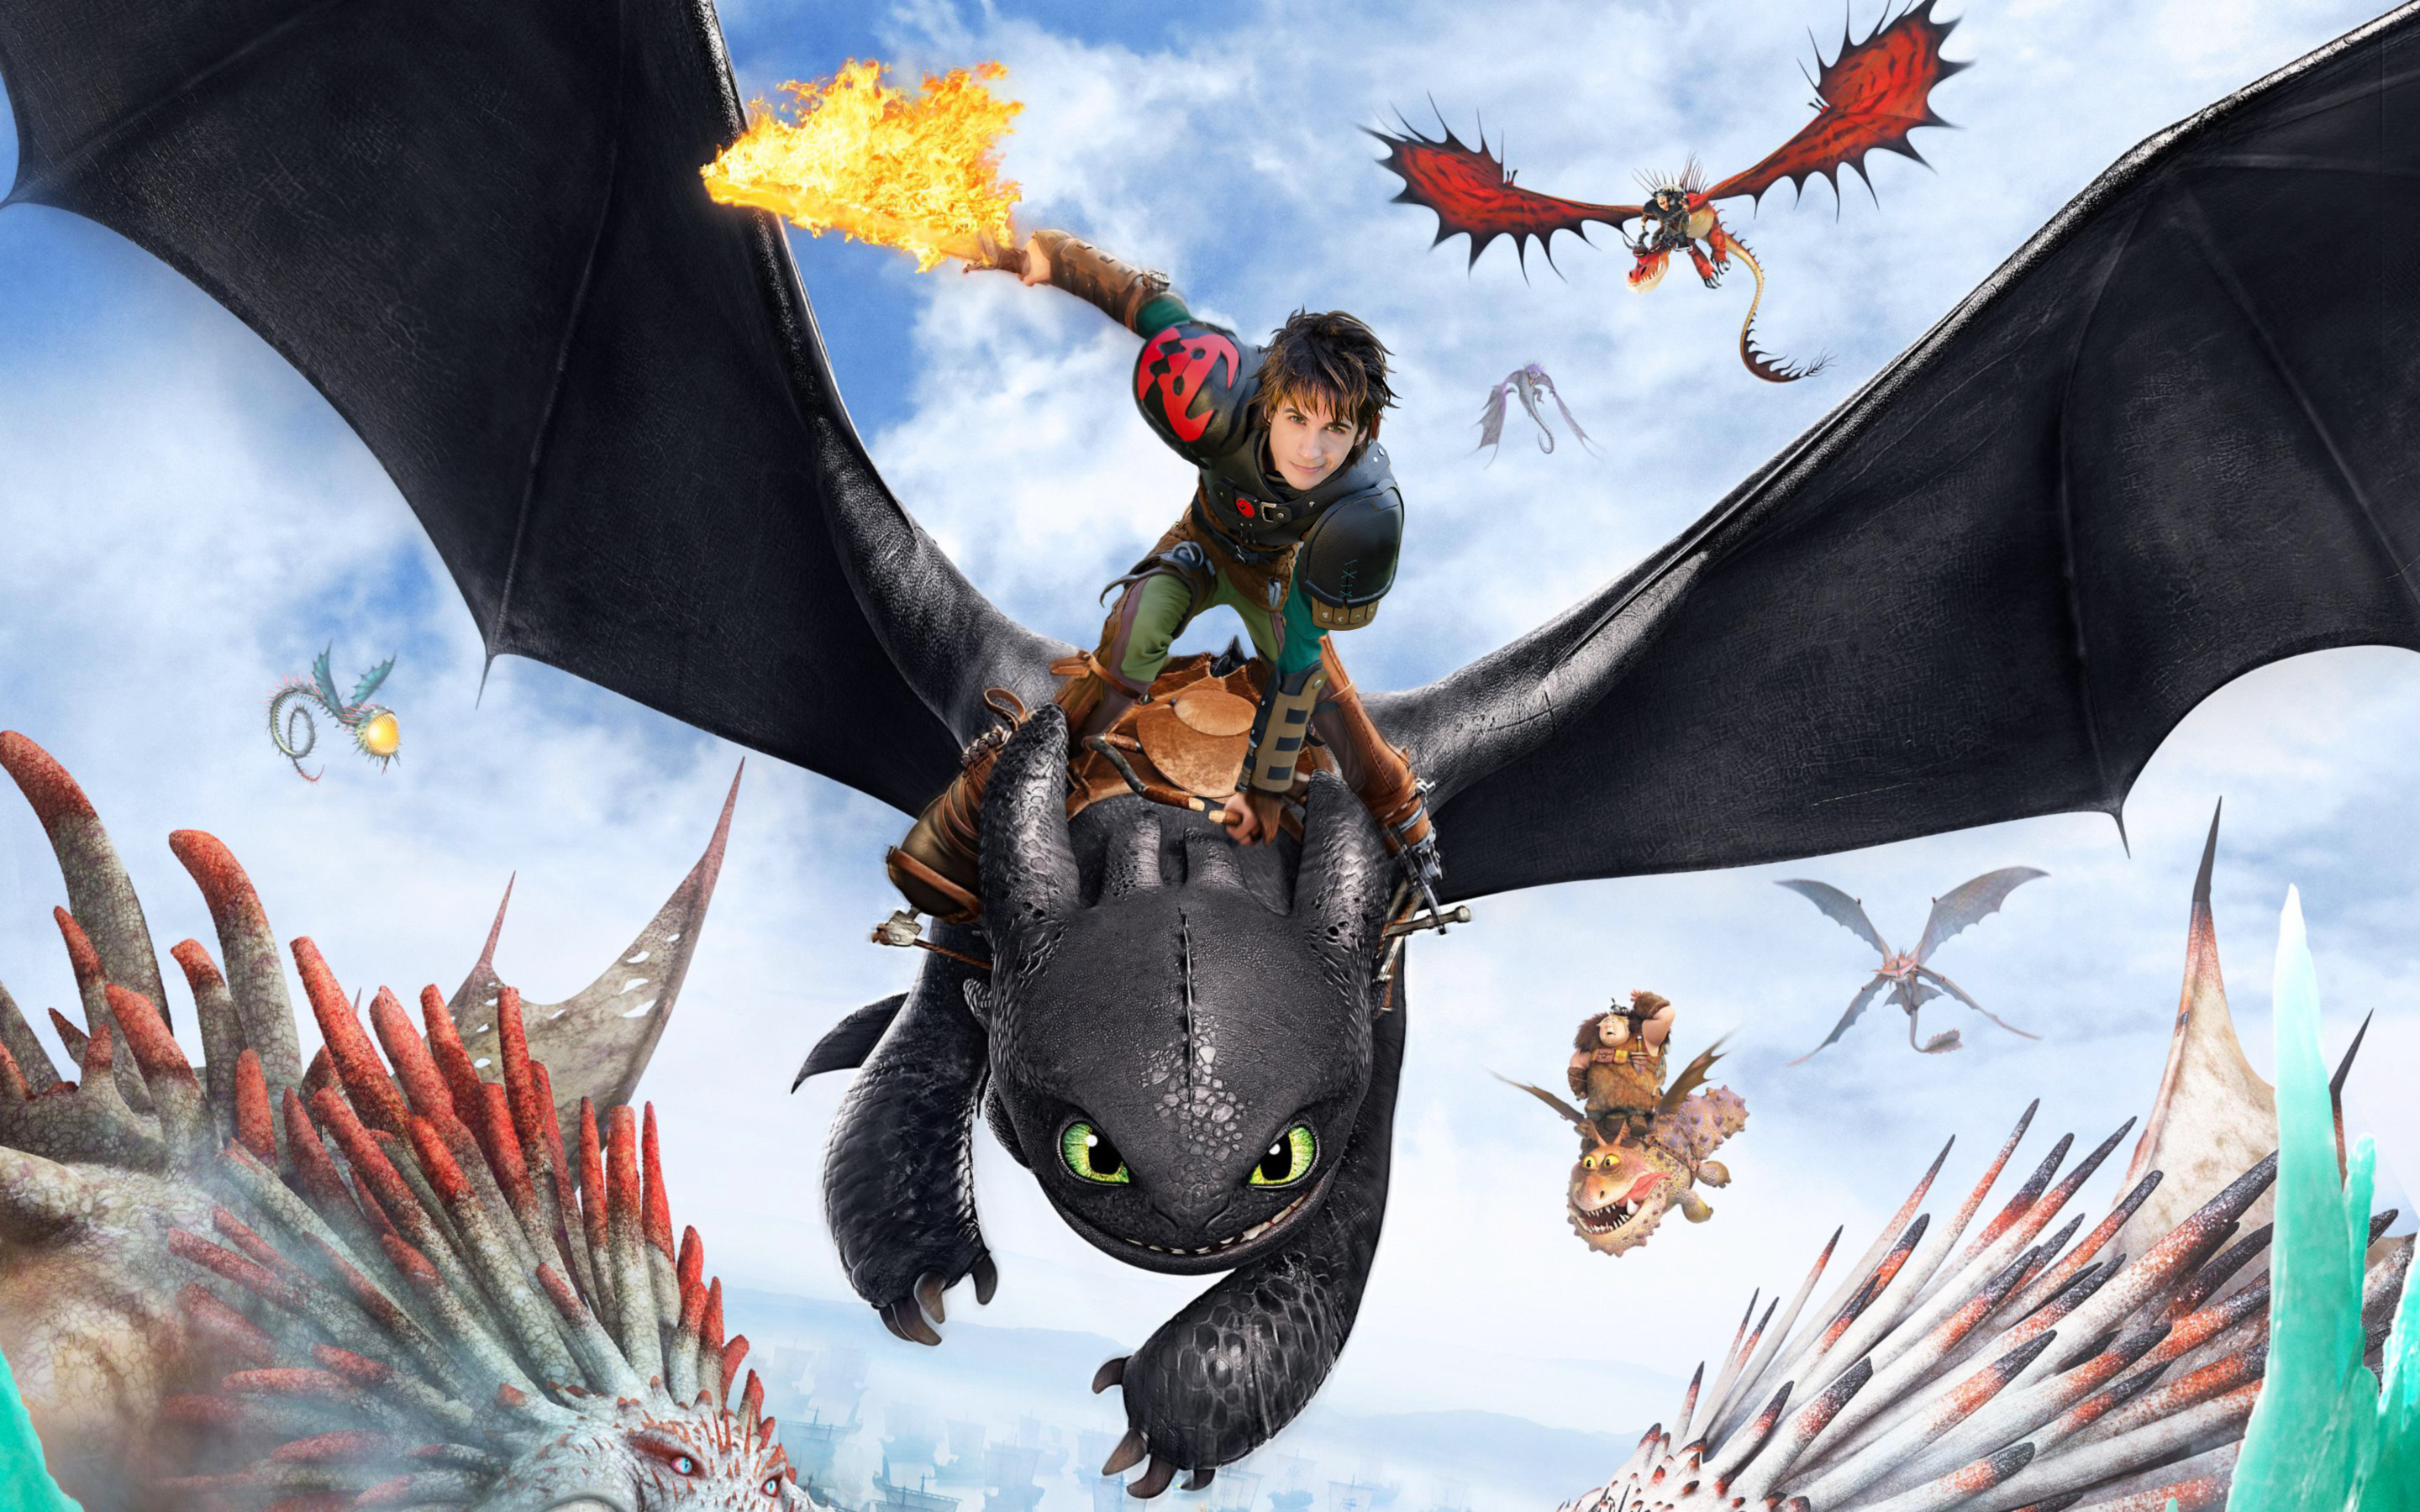 Hiccup and toothless httyd2 cosplay manip by alexandrake89 on hiccup and toothless httyd2 cosplay manip by alexandrake89 ccuart Images